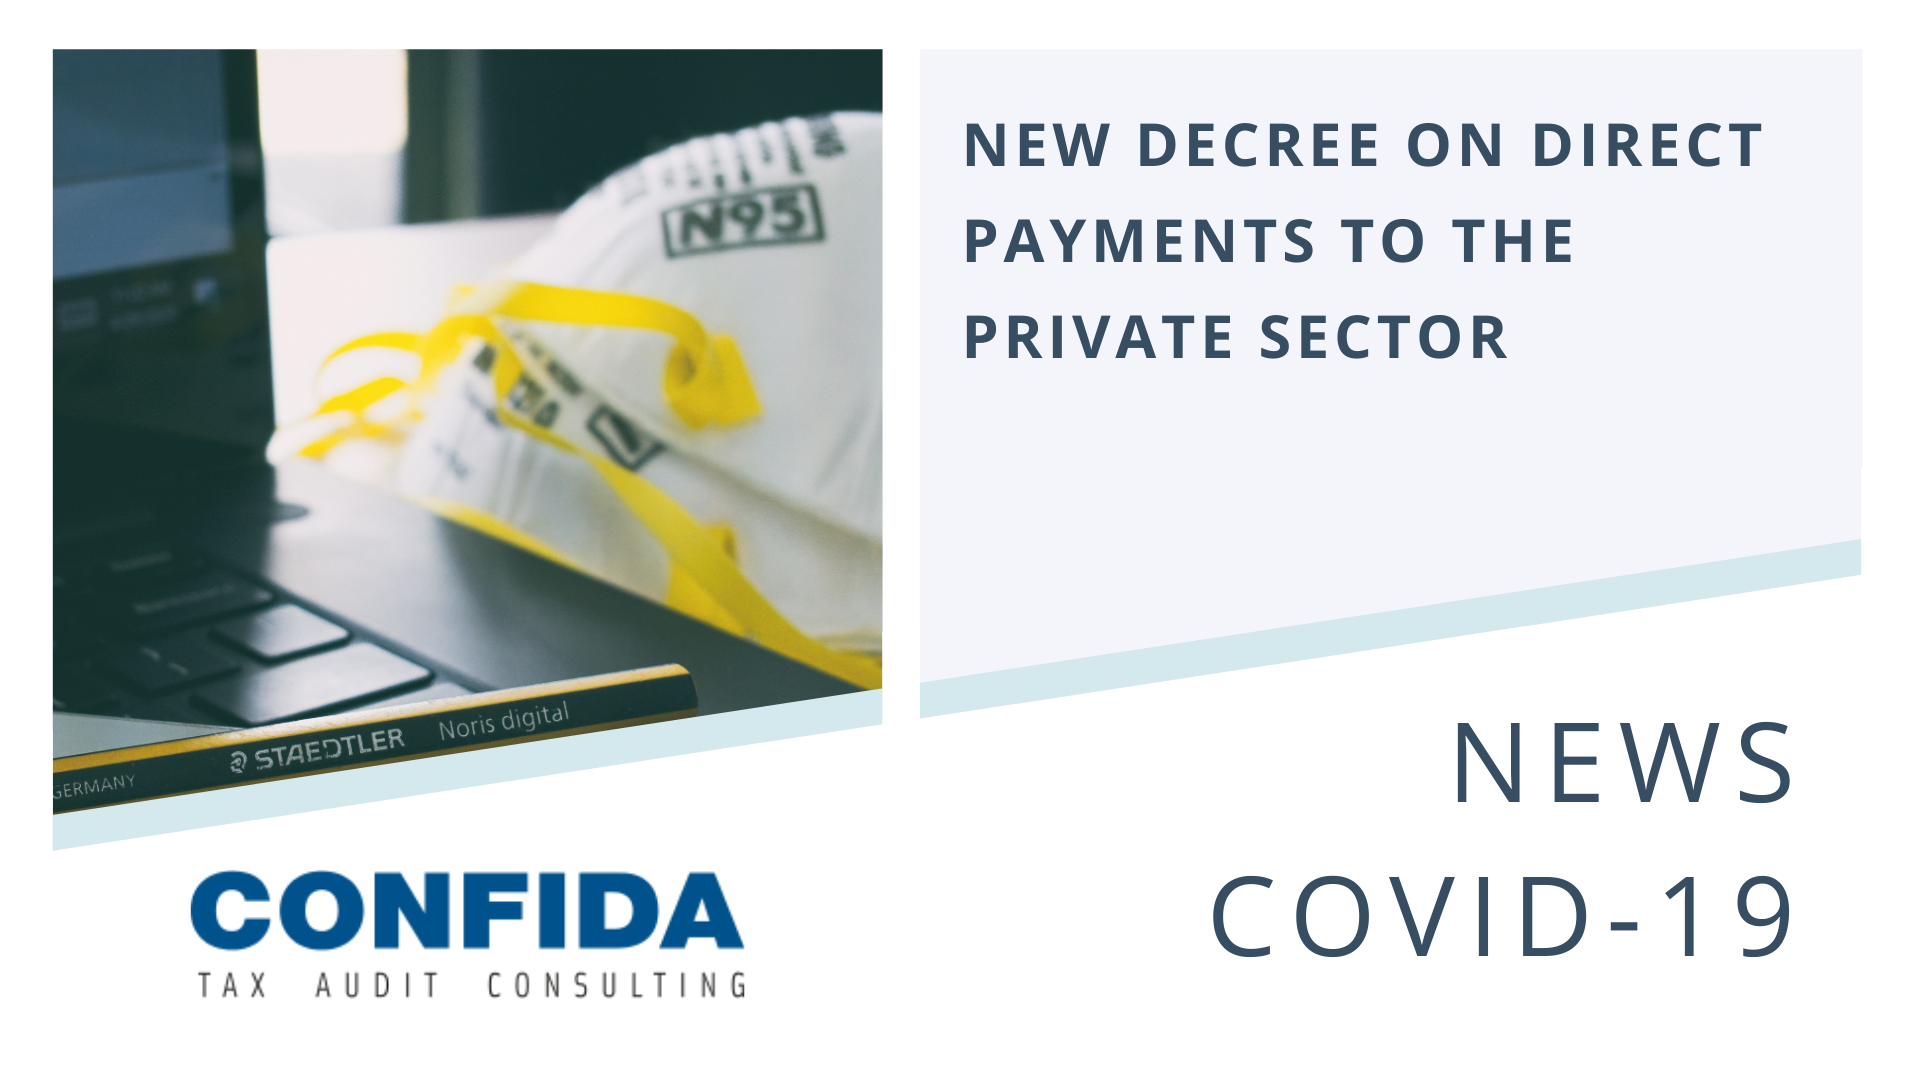 New Decree on Direct Payments to the Private Sector